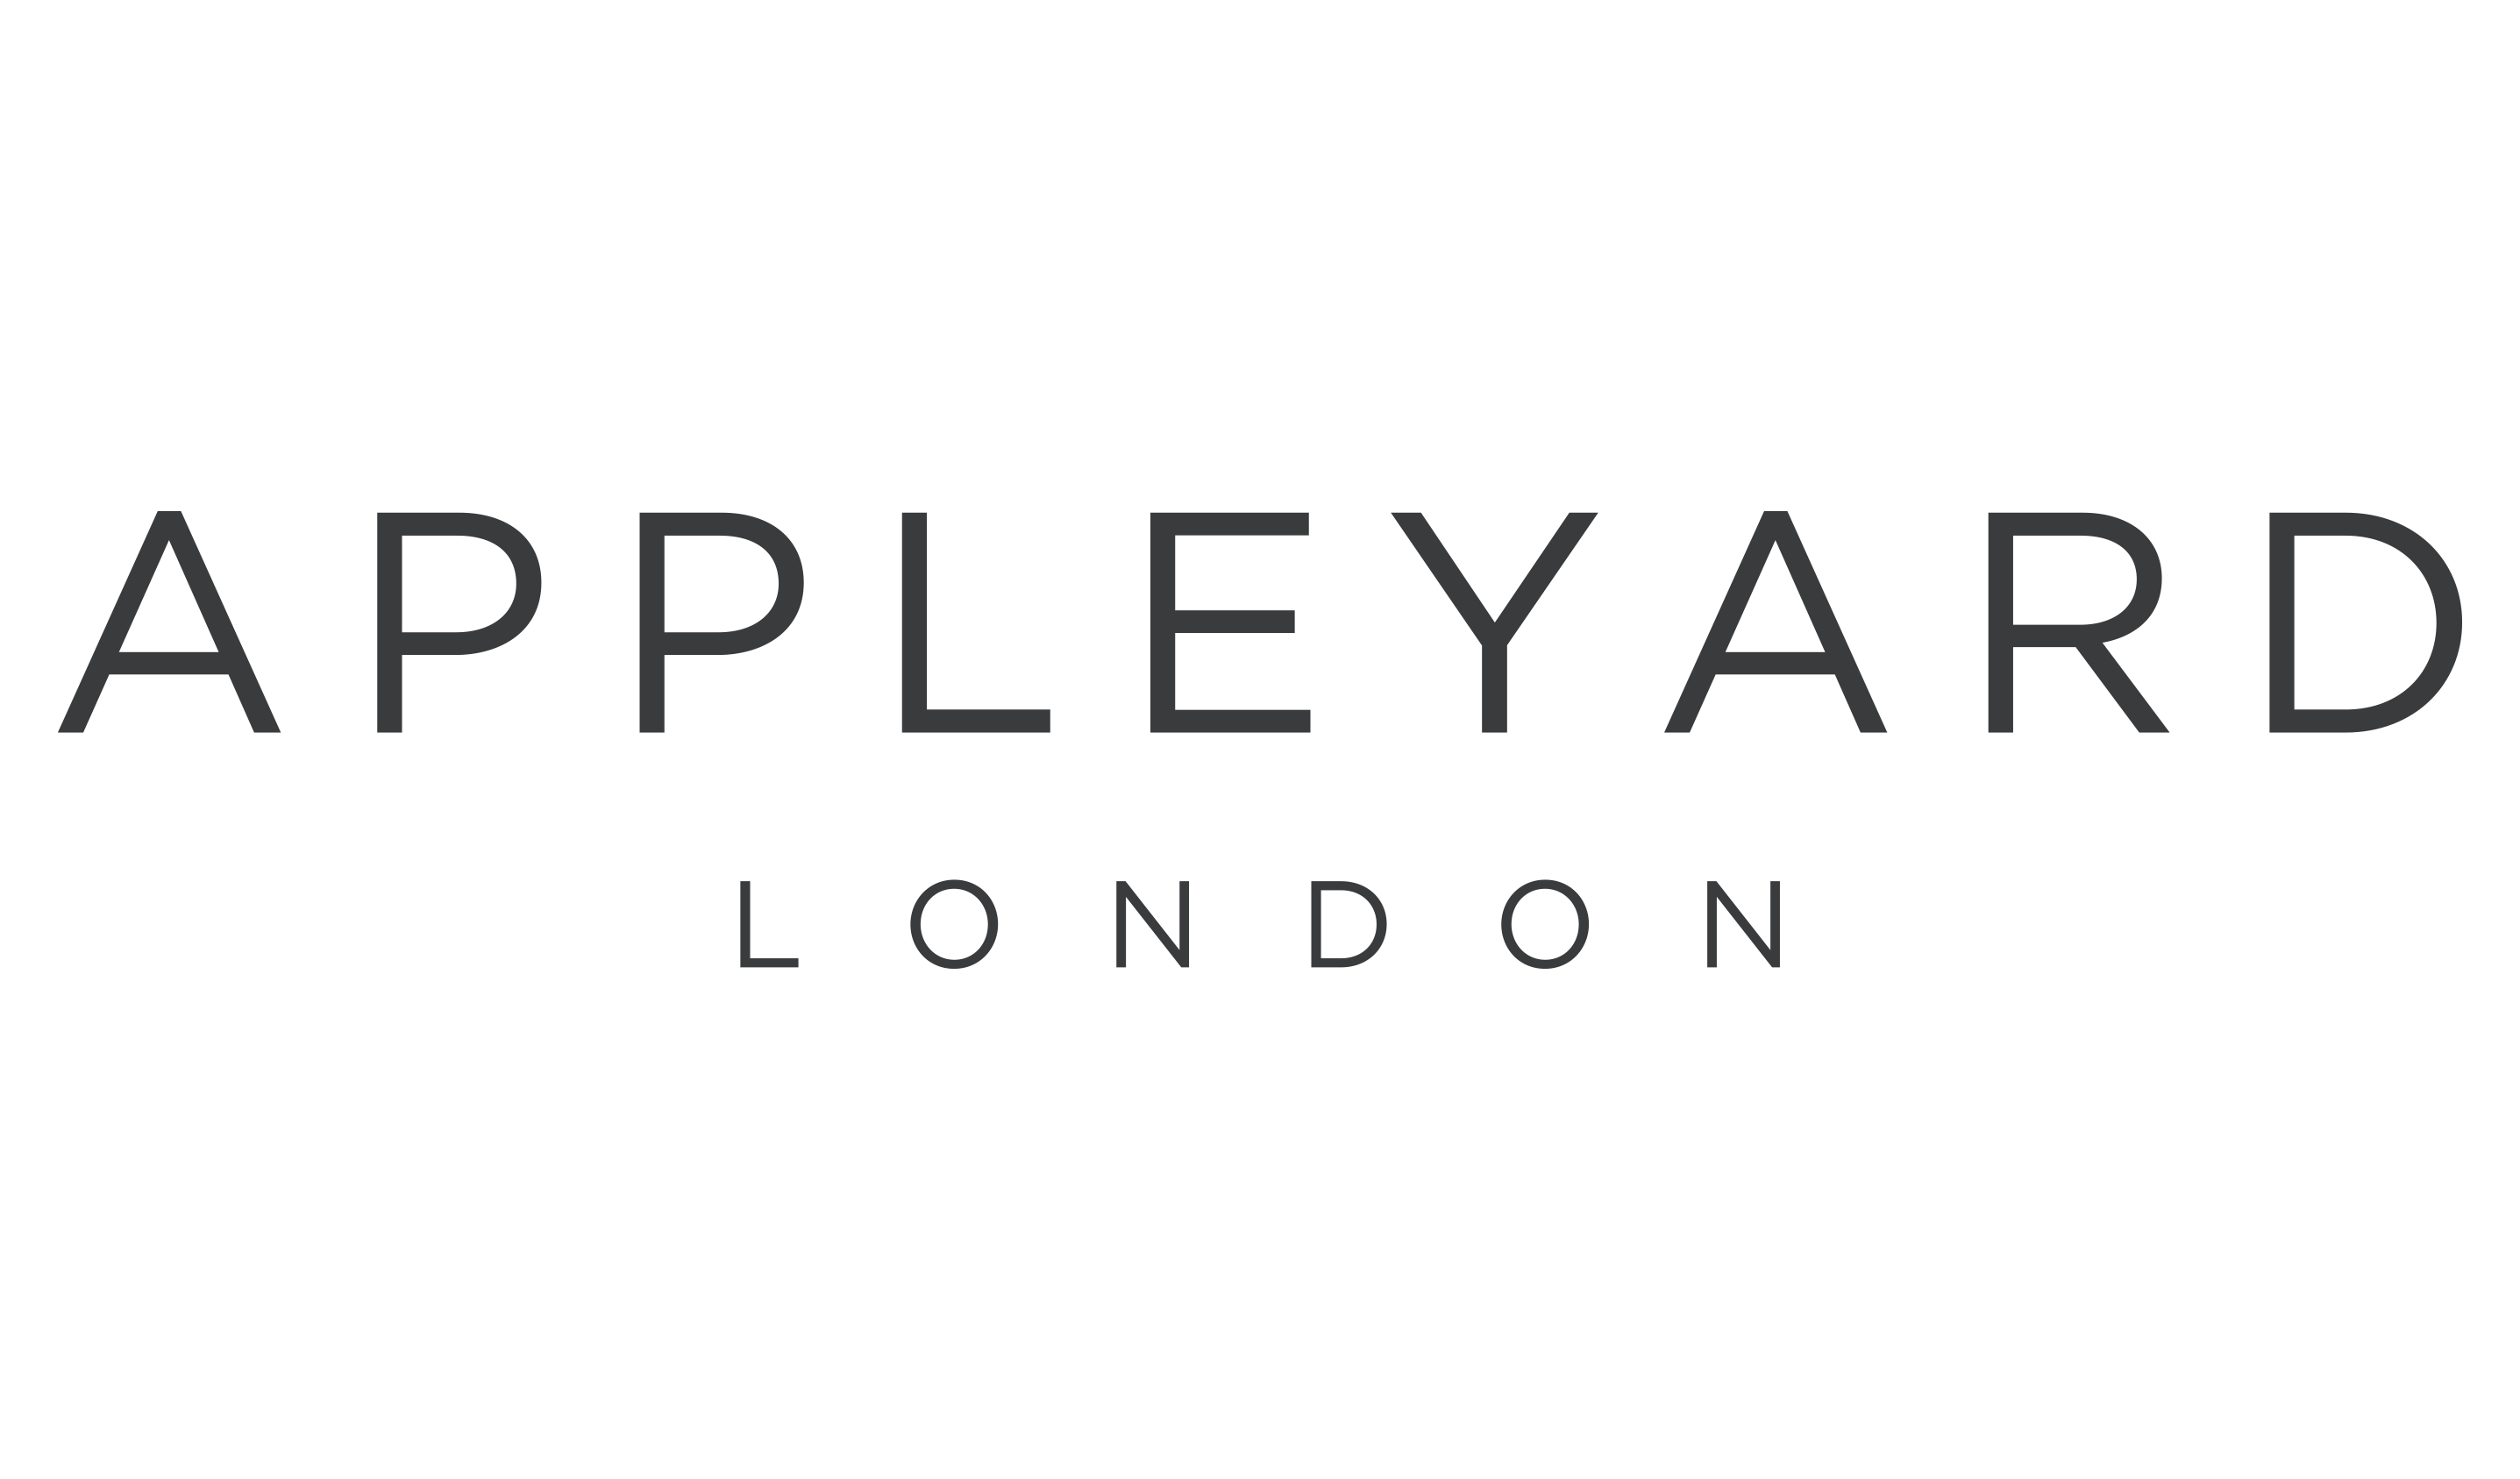 Read Appleyard London Reviews